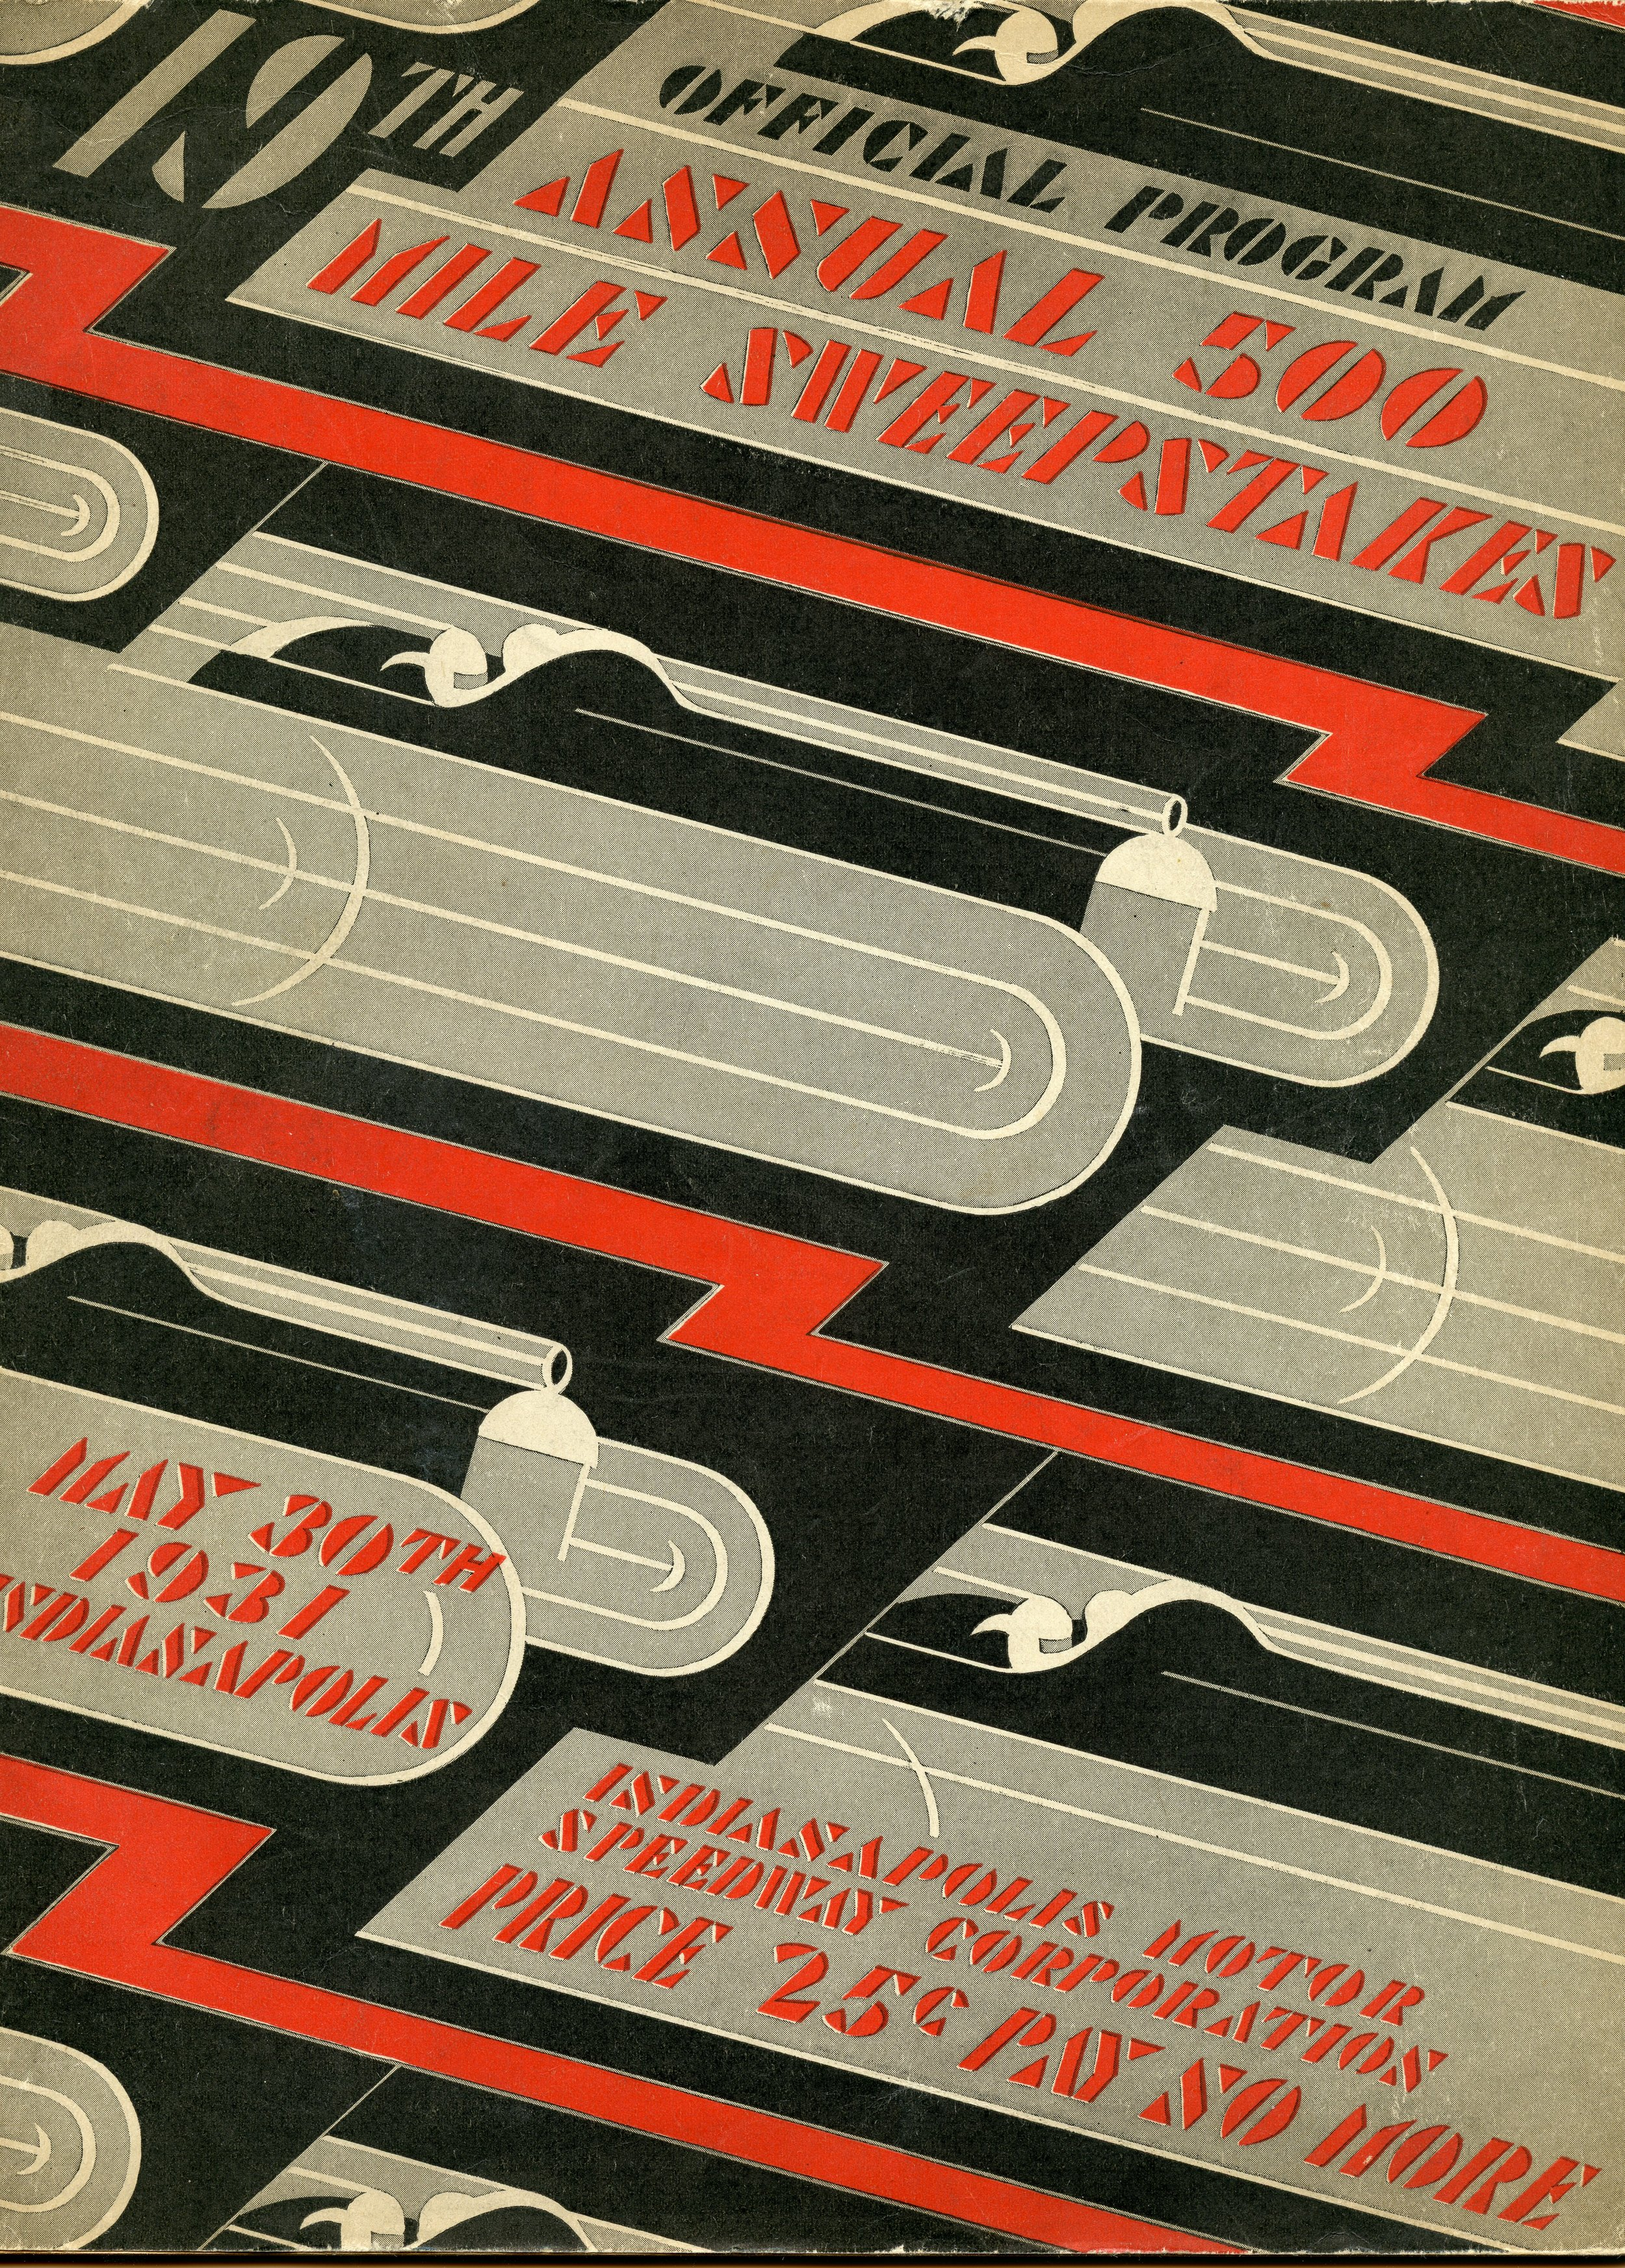 Indianapolis 500 Program Cover, 1931, WOS#3212